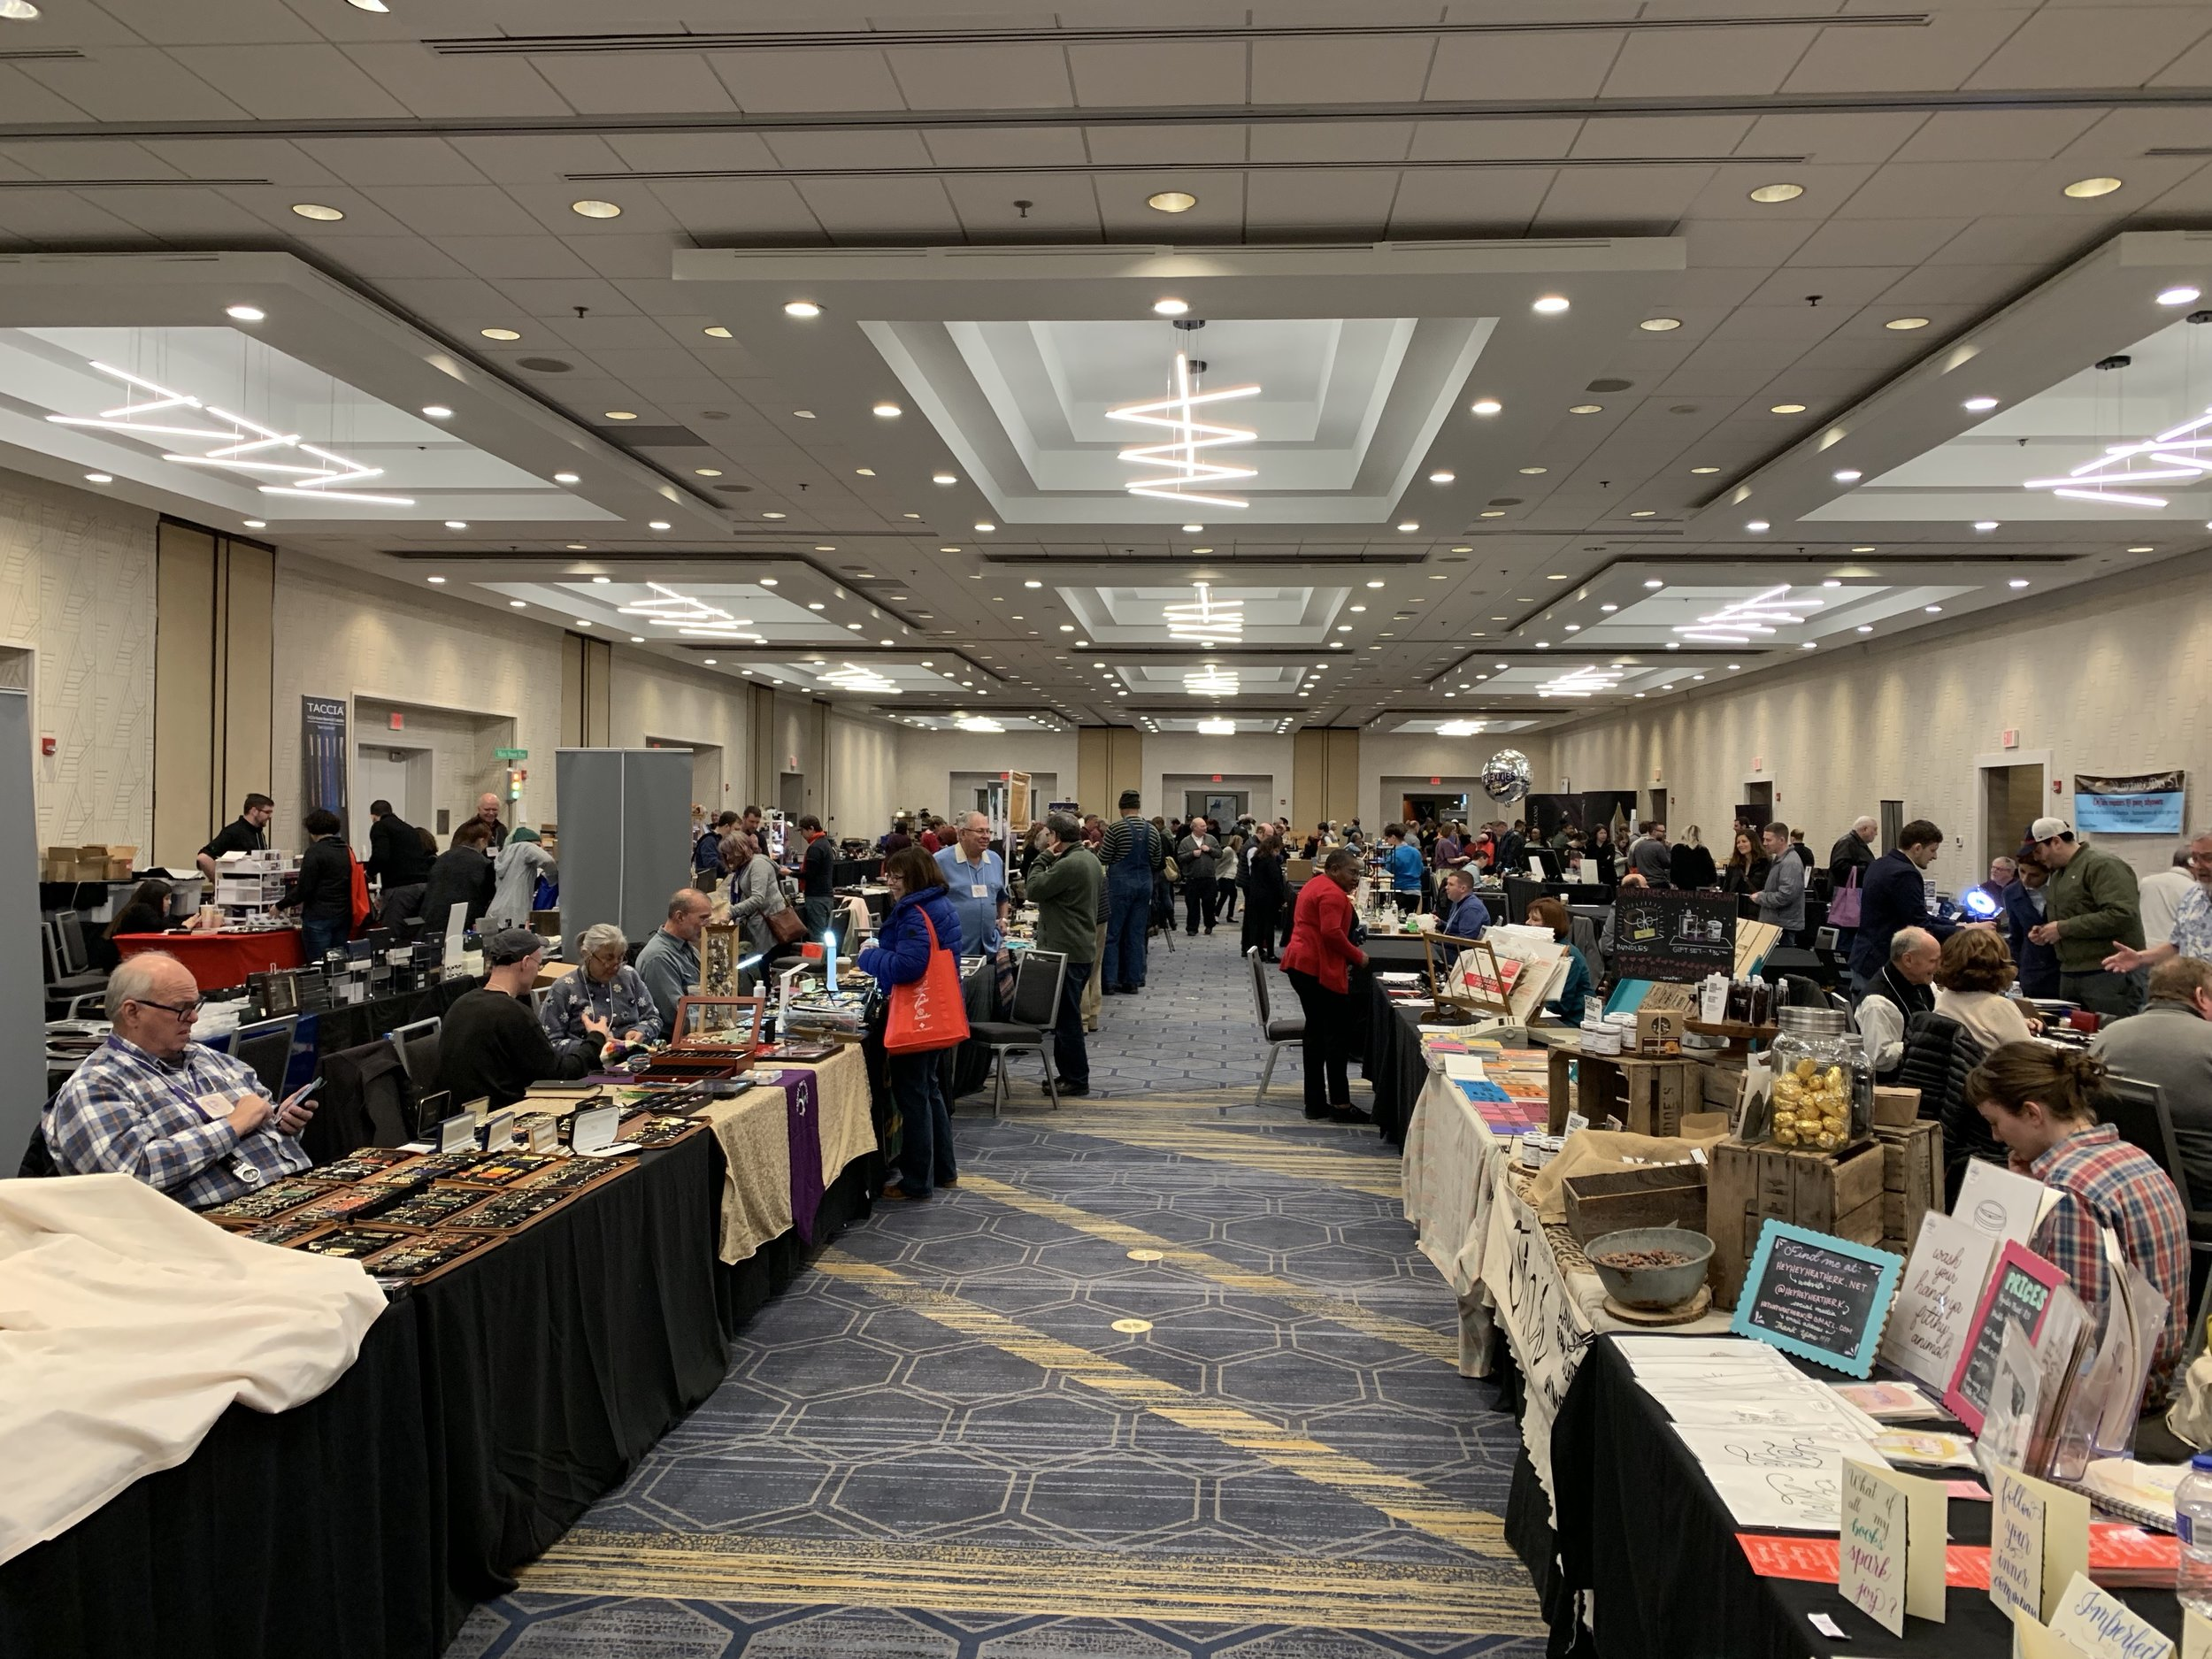 The Baltimore Pen Show ballroom from the back looking forward, early on Sunday morning. Note to other pen show organizers: wide aisles + good light + air conditioning = happy everybody.